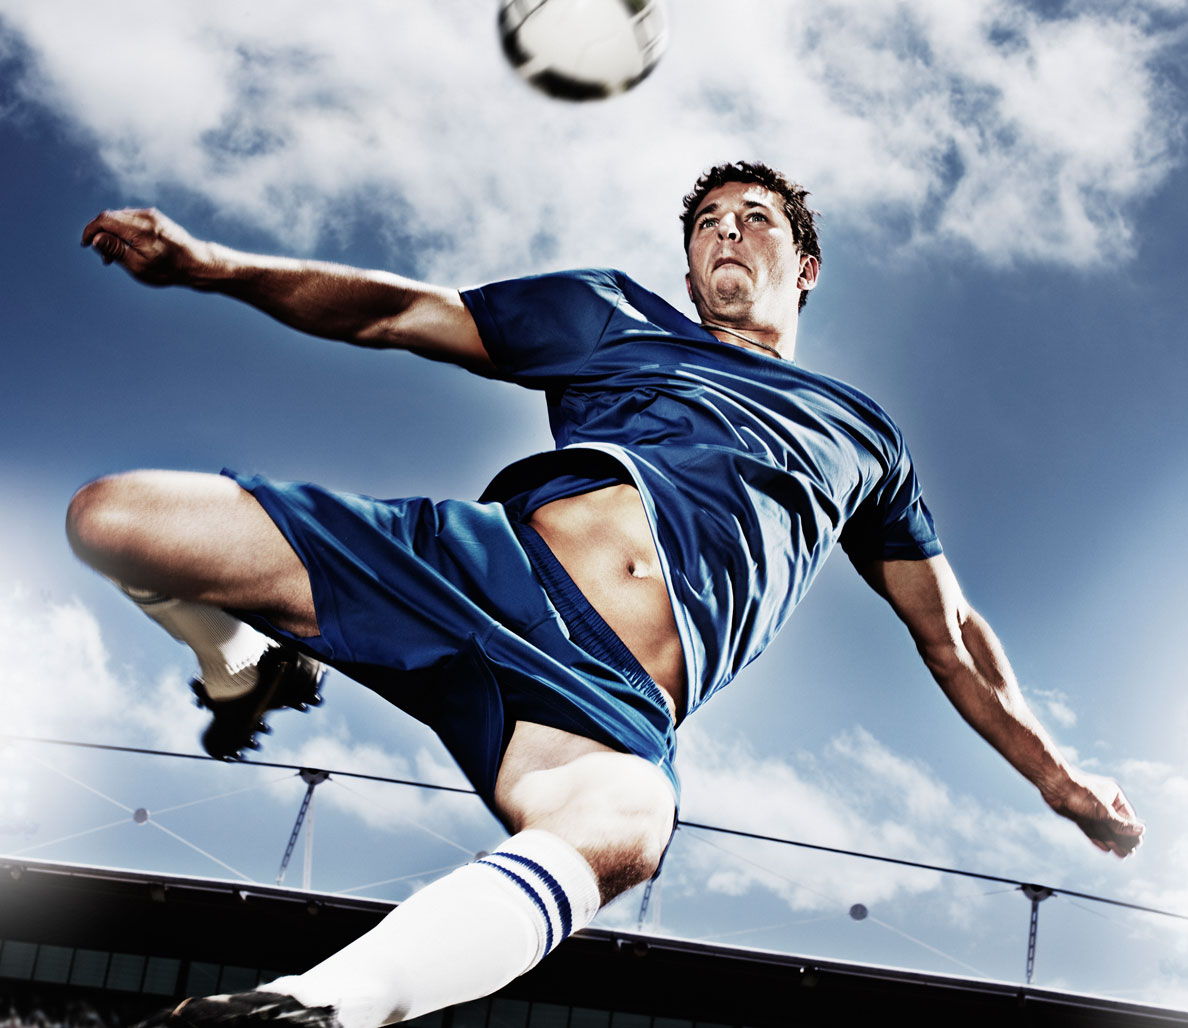 The Soccer Workout to Build Explosive Power and Increase Mobility